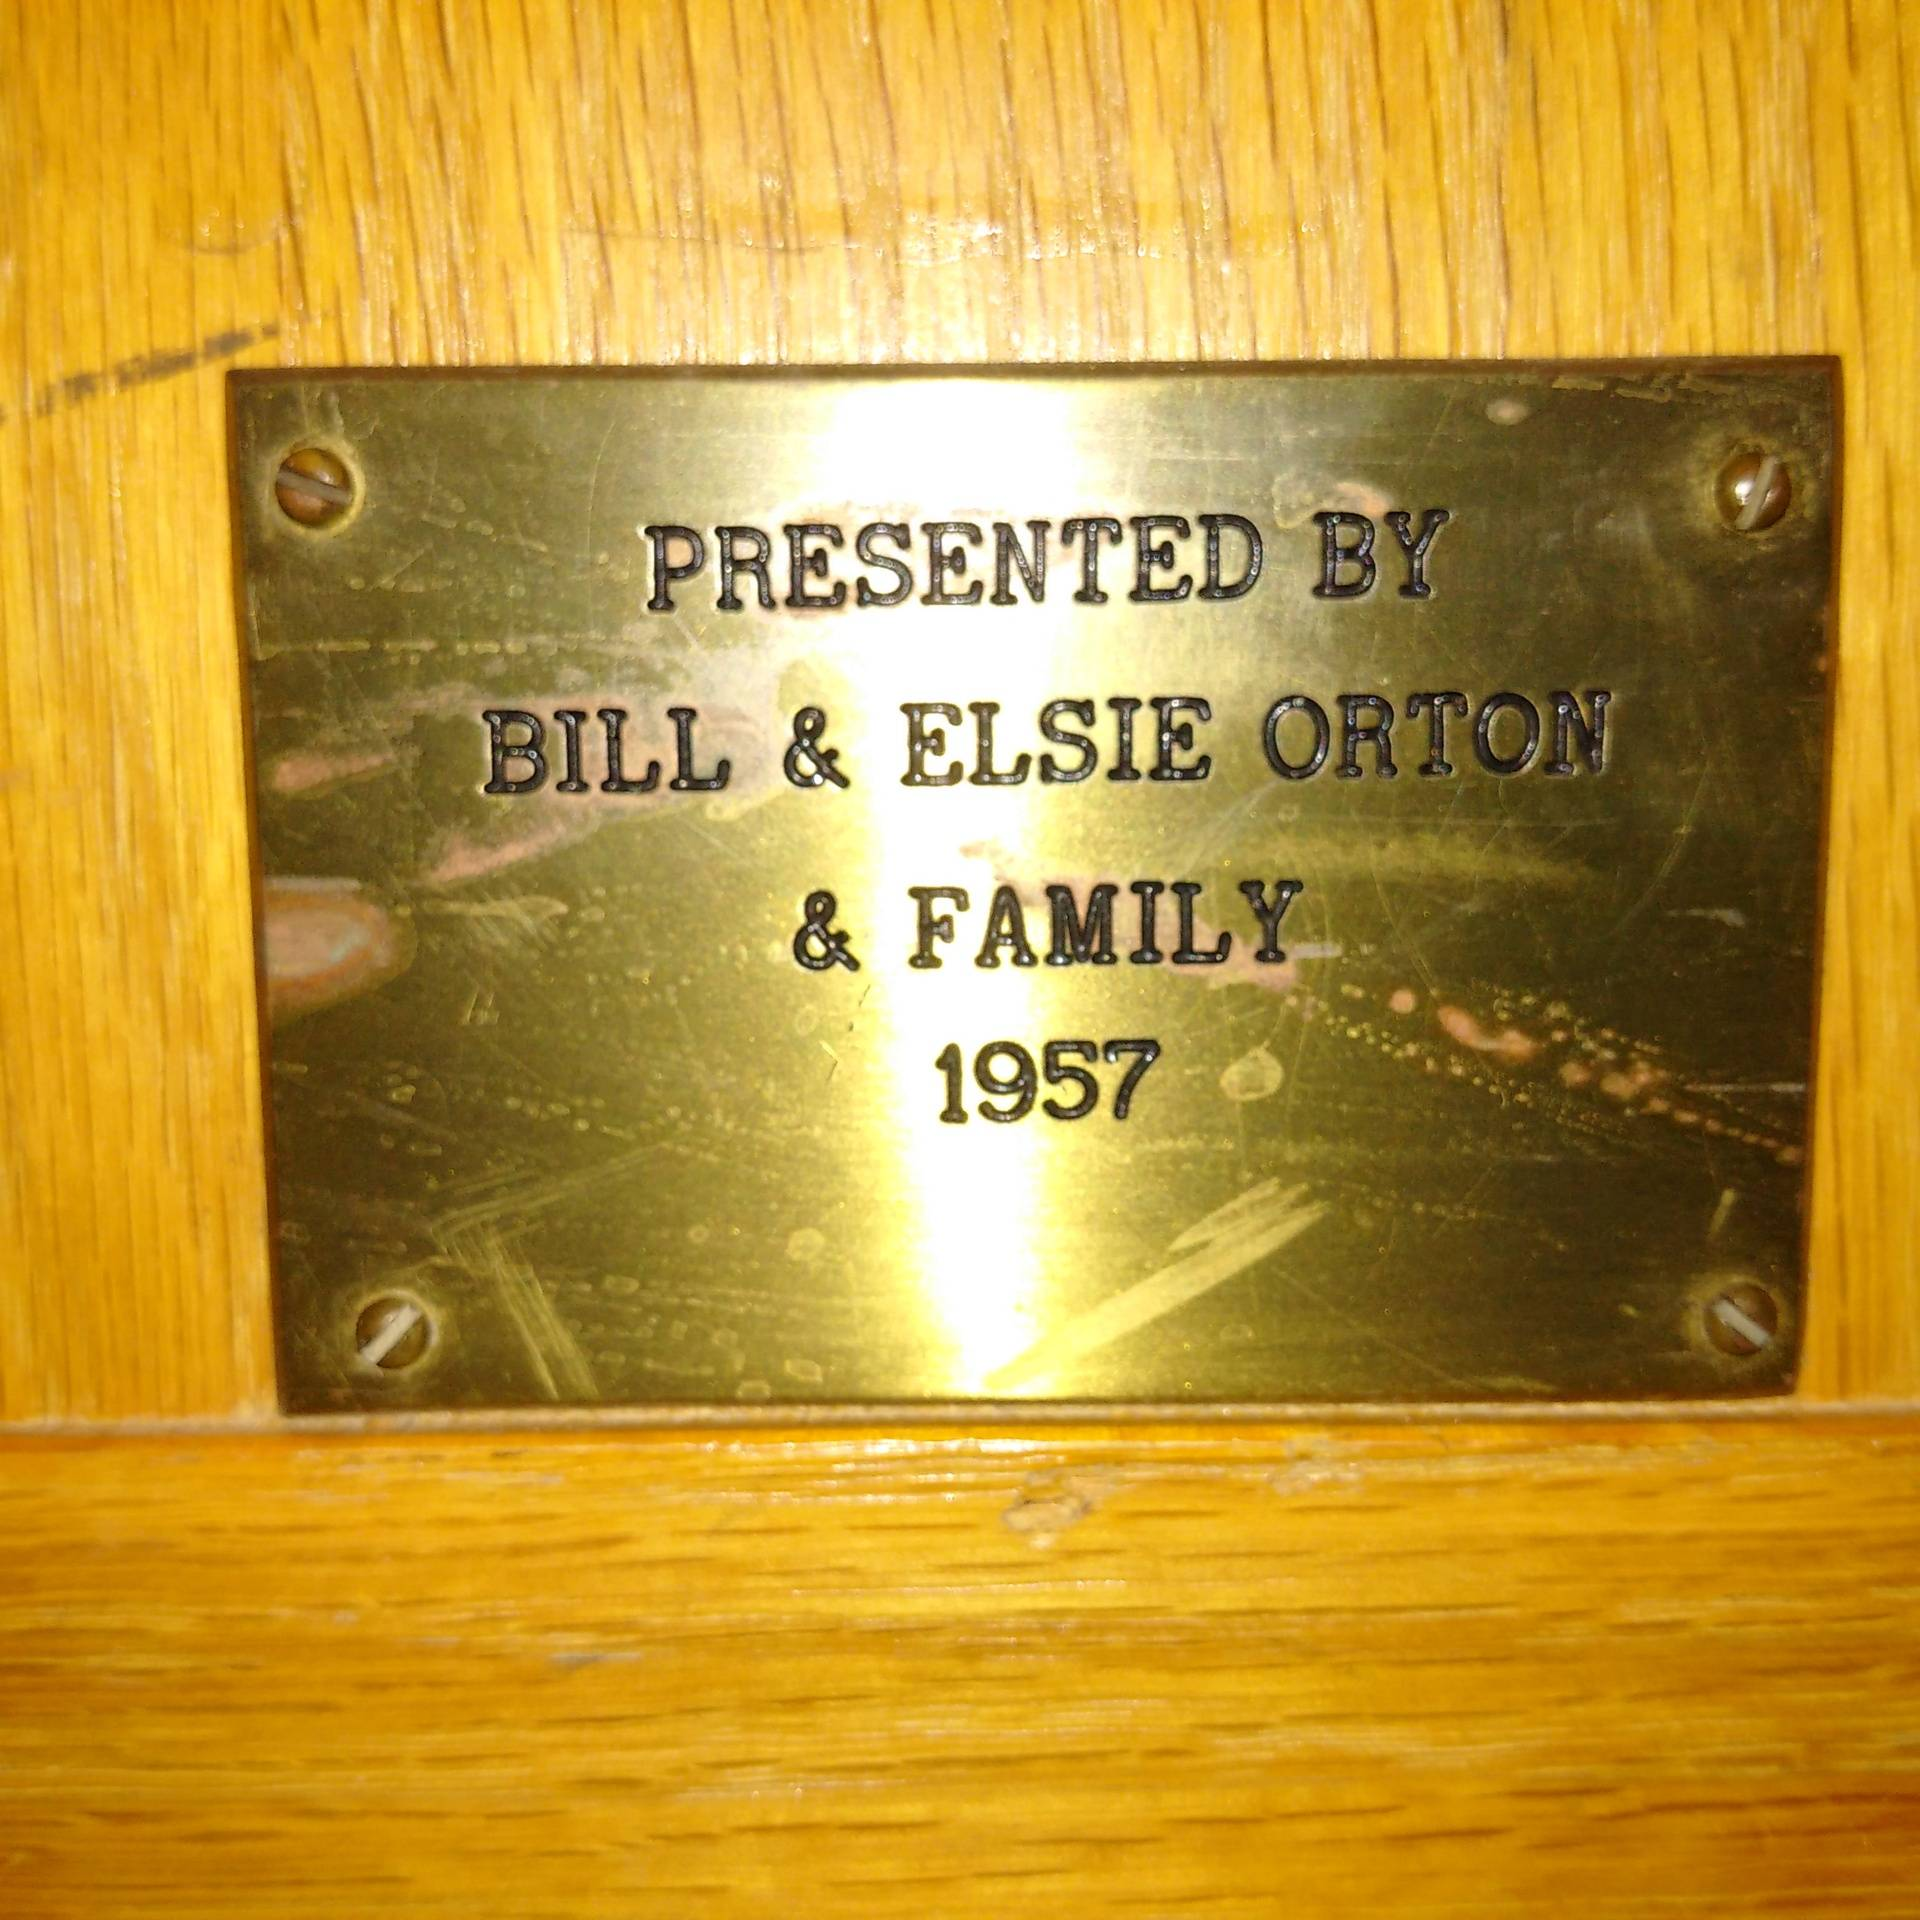 Bill and Elsie Orton & Family 1957